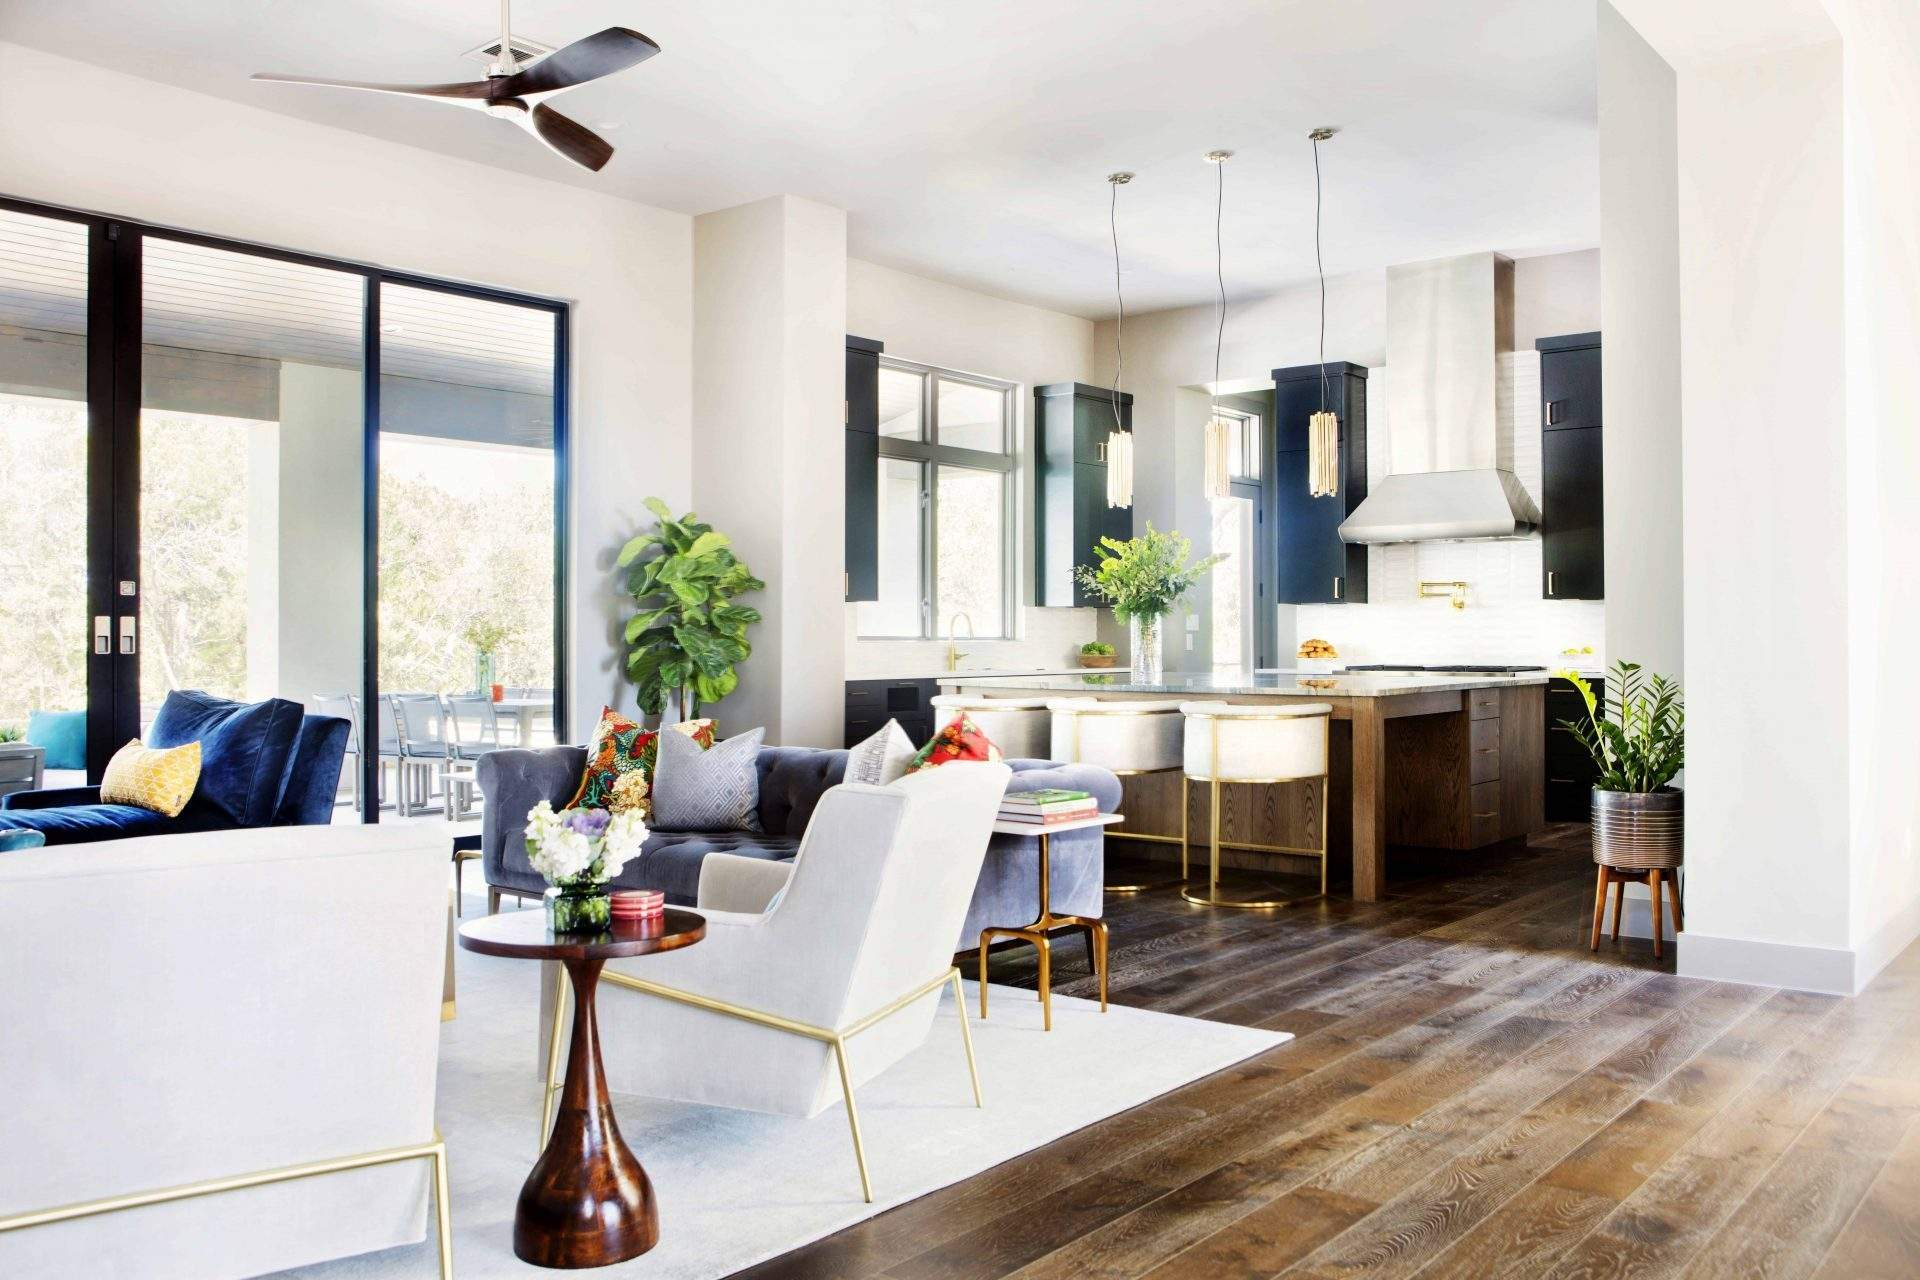 Houzz tour contemporary eclectic and family friendly - Austin interior design firms ...